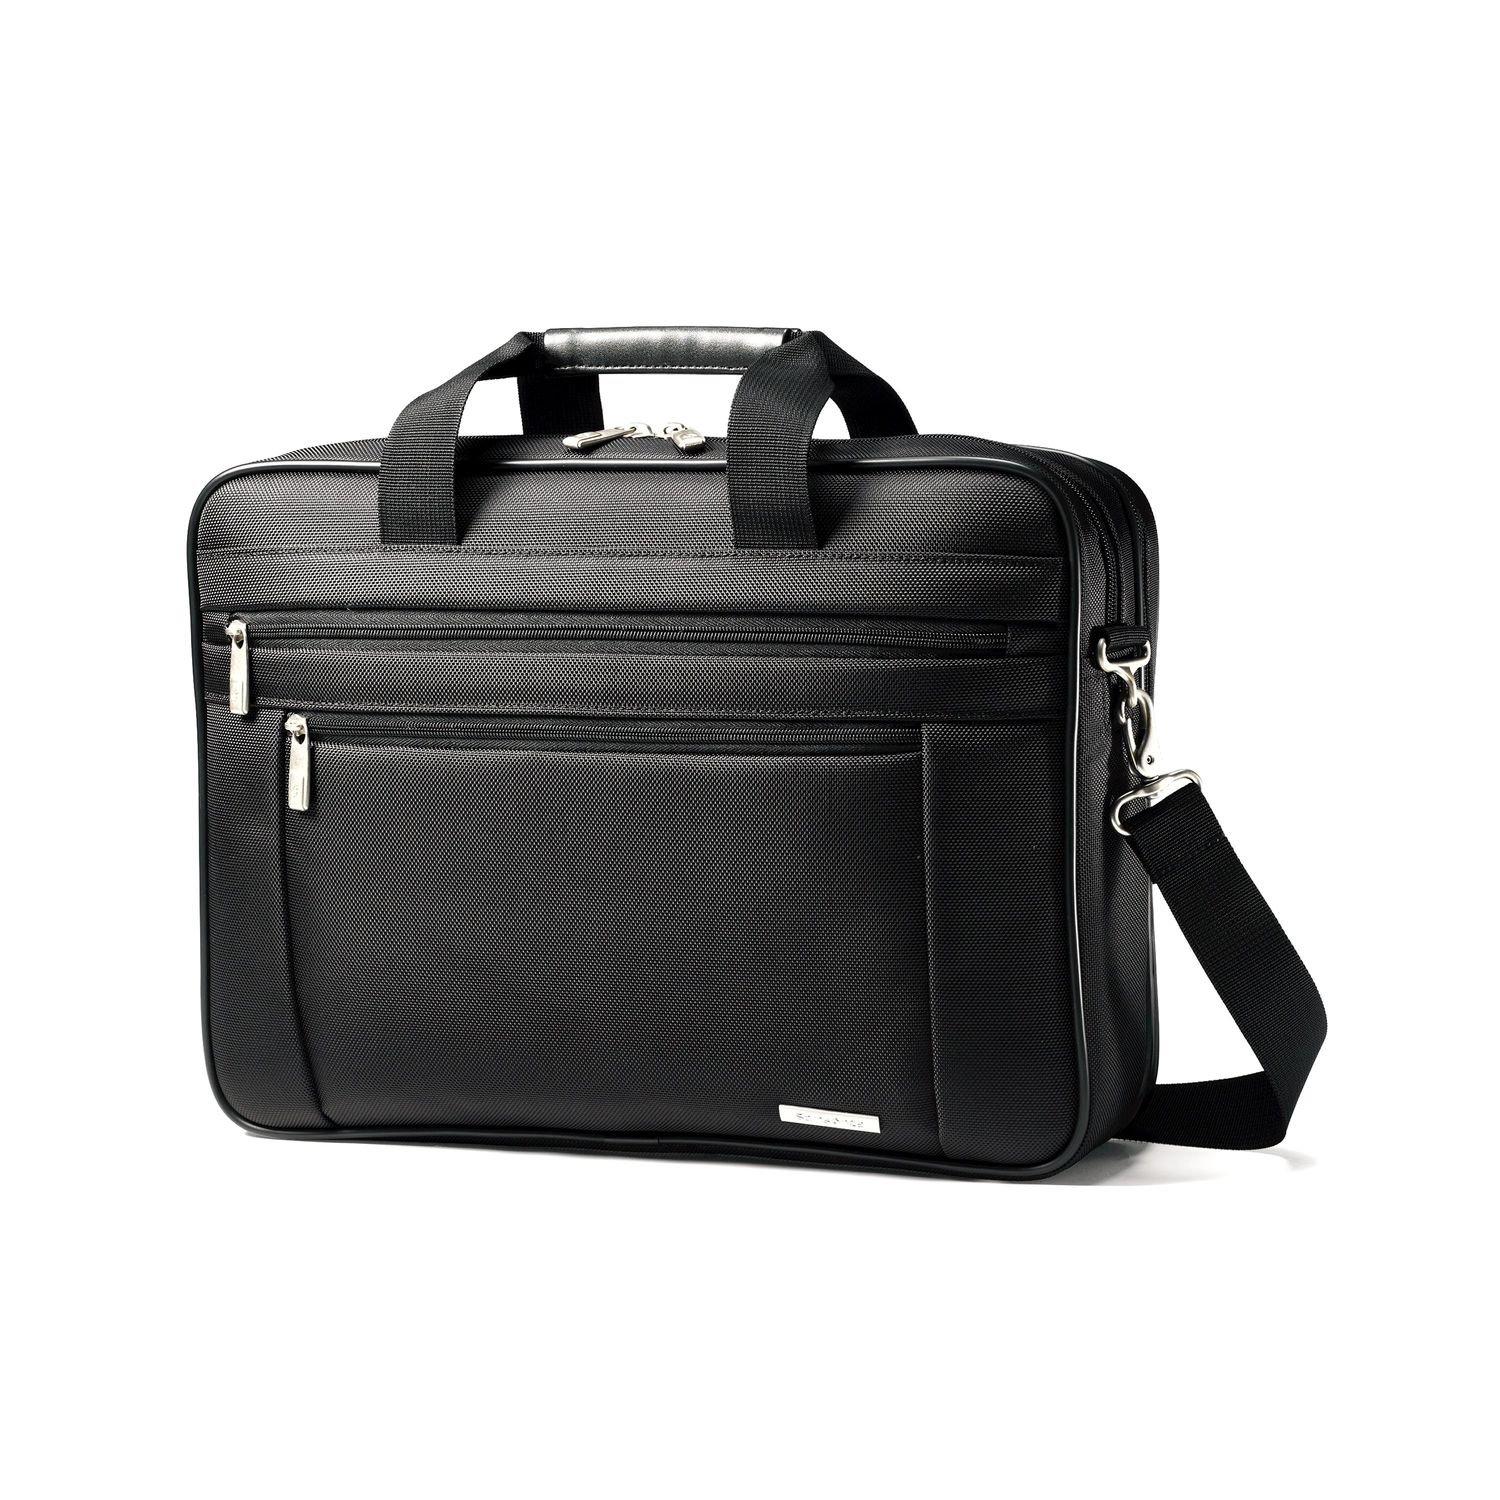 Samsonite Classic Business Perfect Fit 15.6'' Two Gusset Laptop Bag in Black